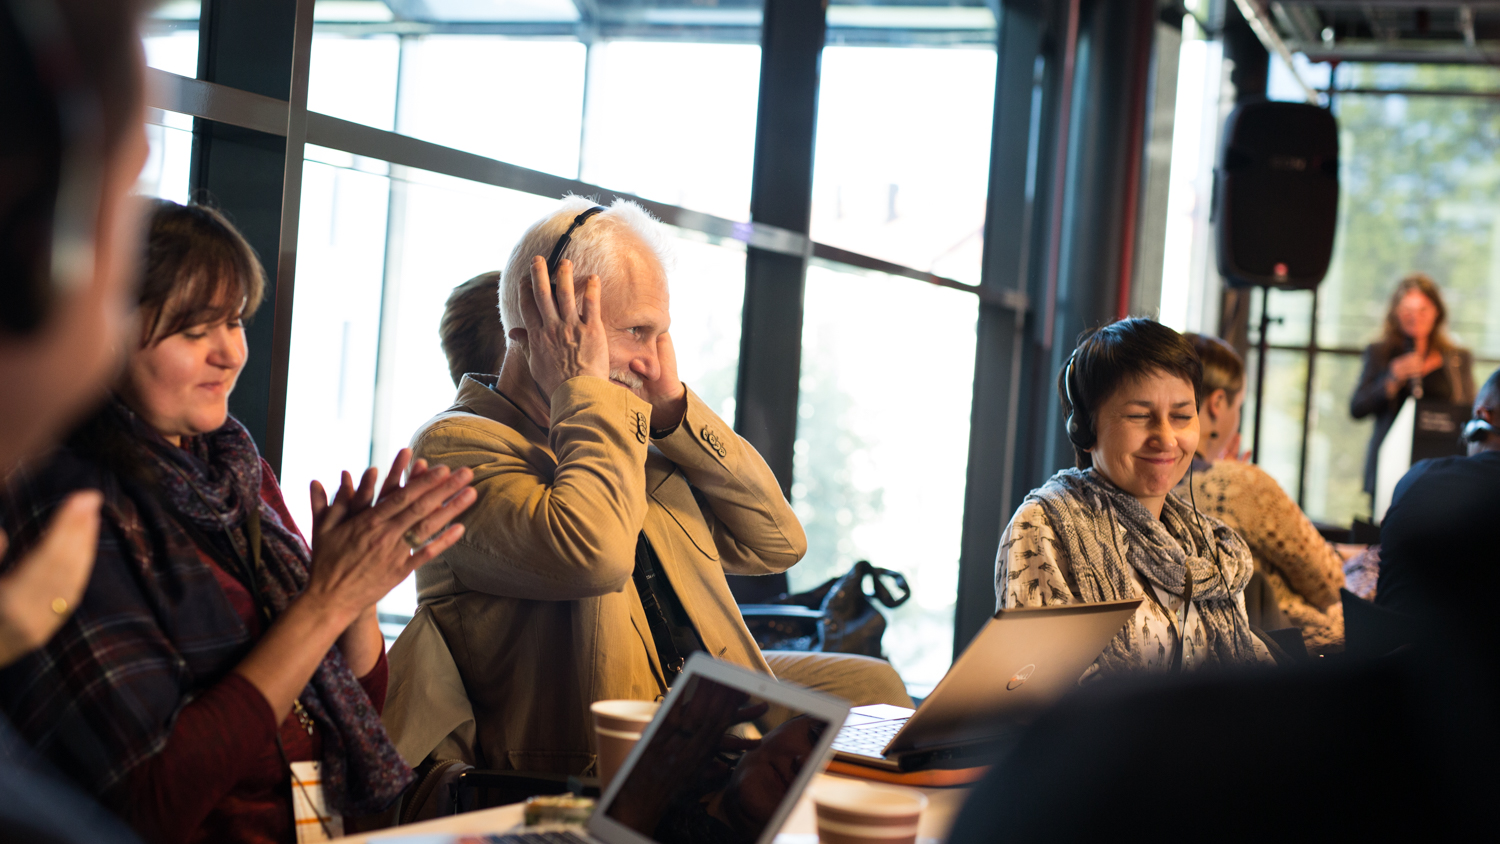 For the first time since his release from prison, Ales Bialiatski is reunited with his colleagues from the Human Rights Houses during the 2015 network meeting in Oslo. Photo: humanrightshouse.org